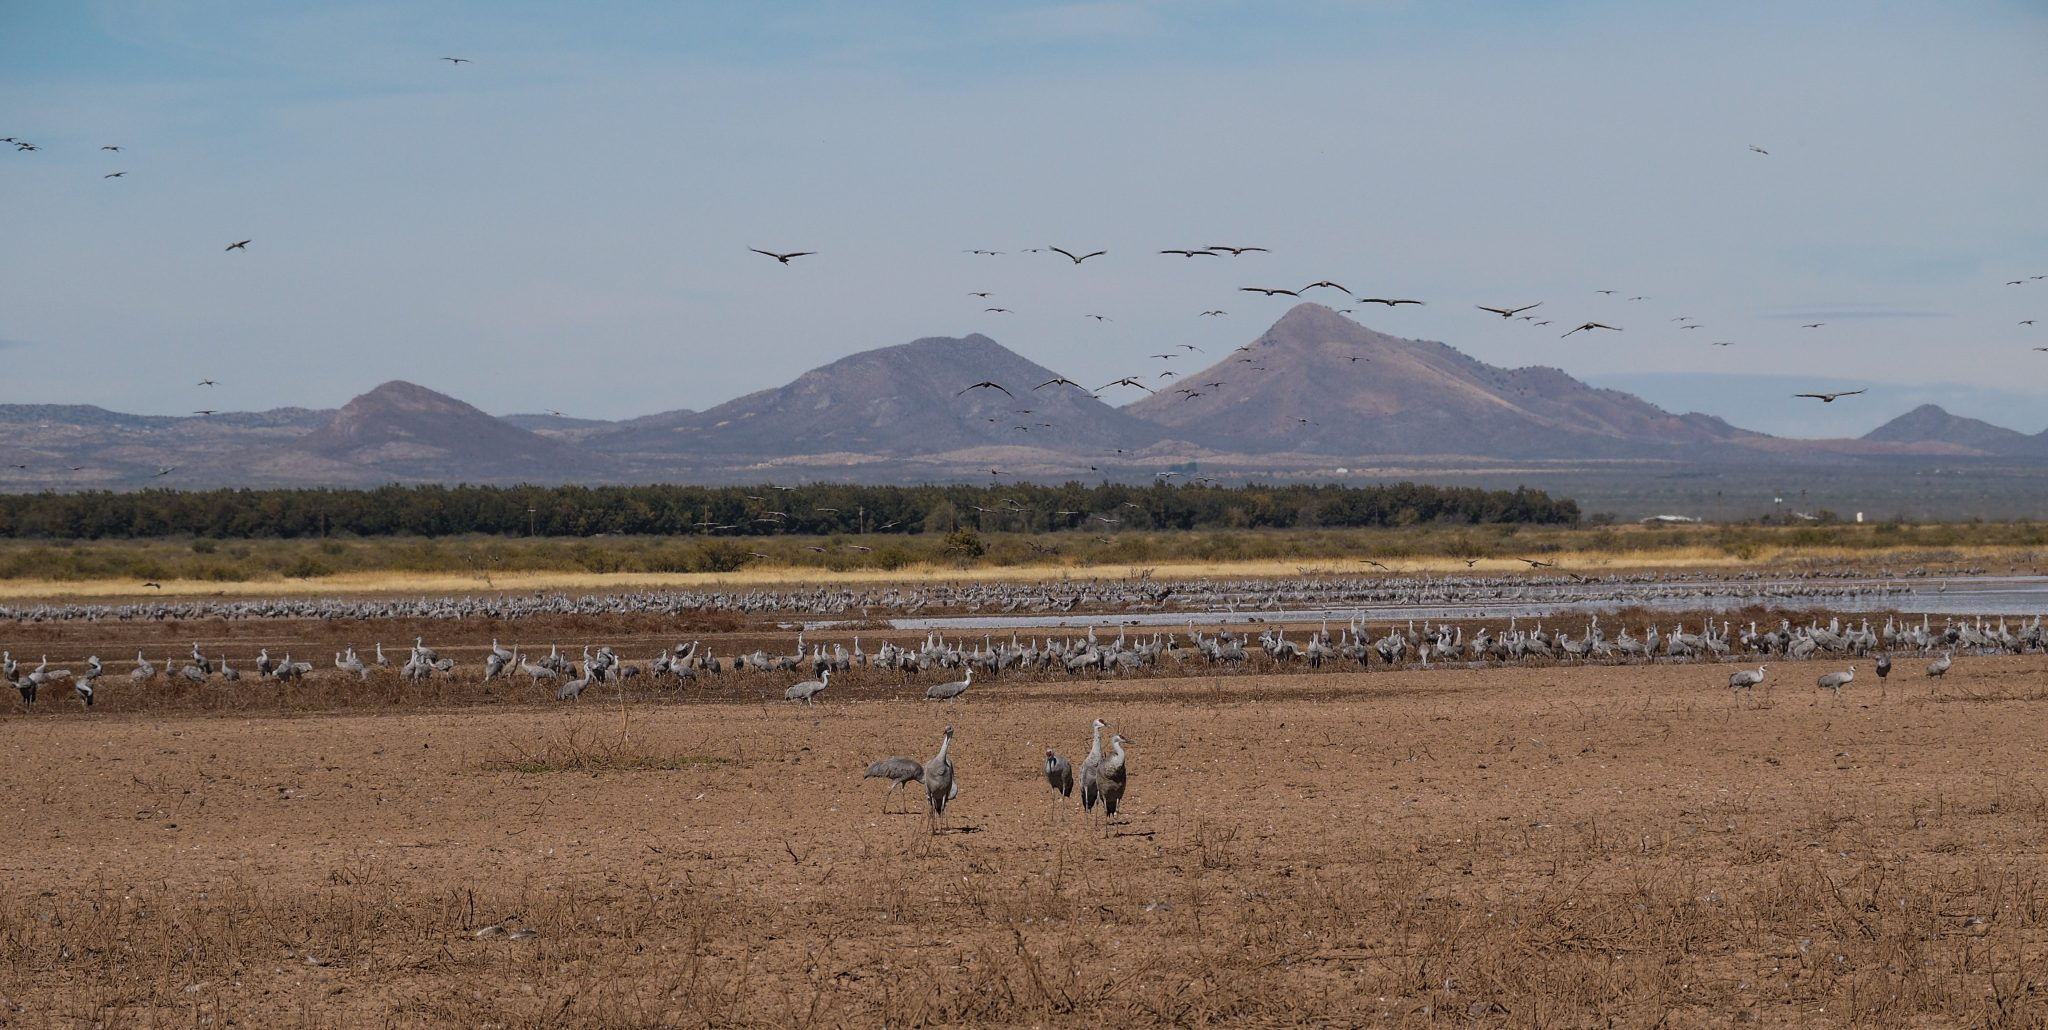 flock of sandhill cranes